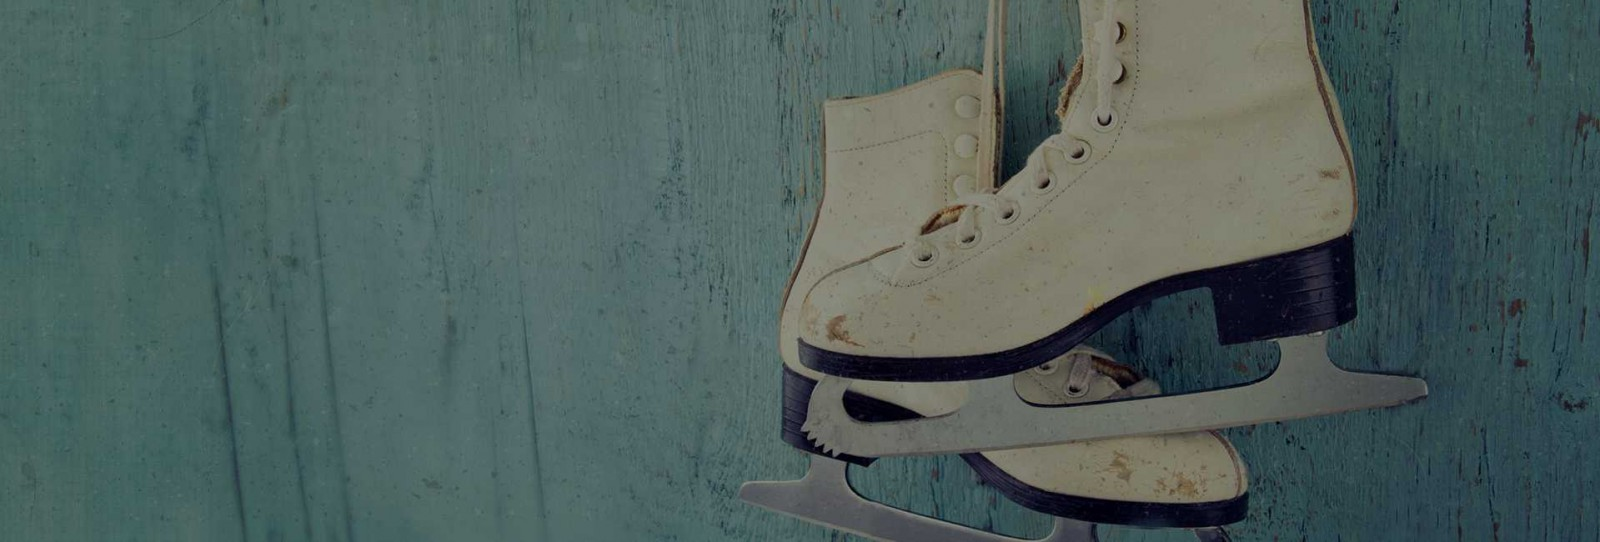 Skate background